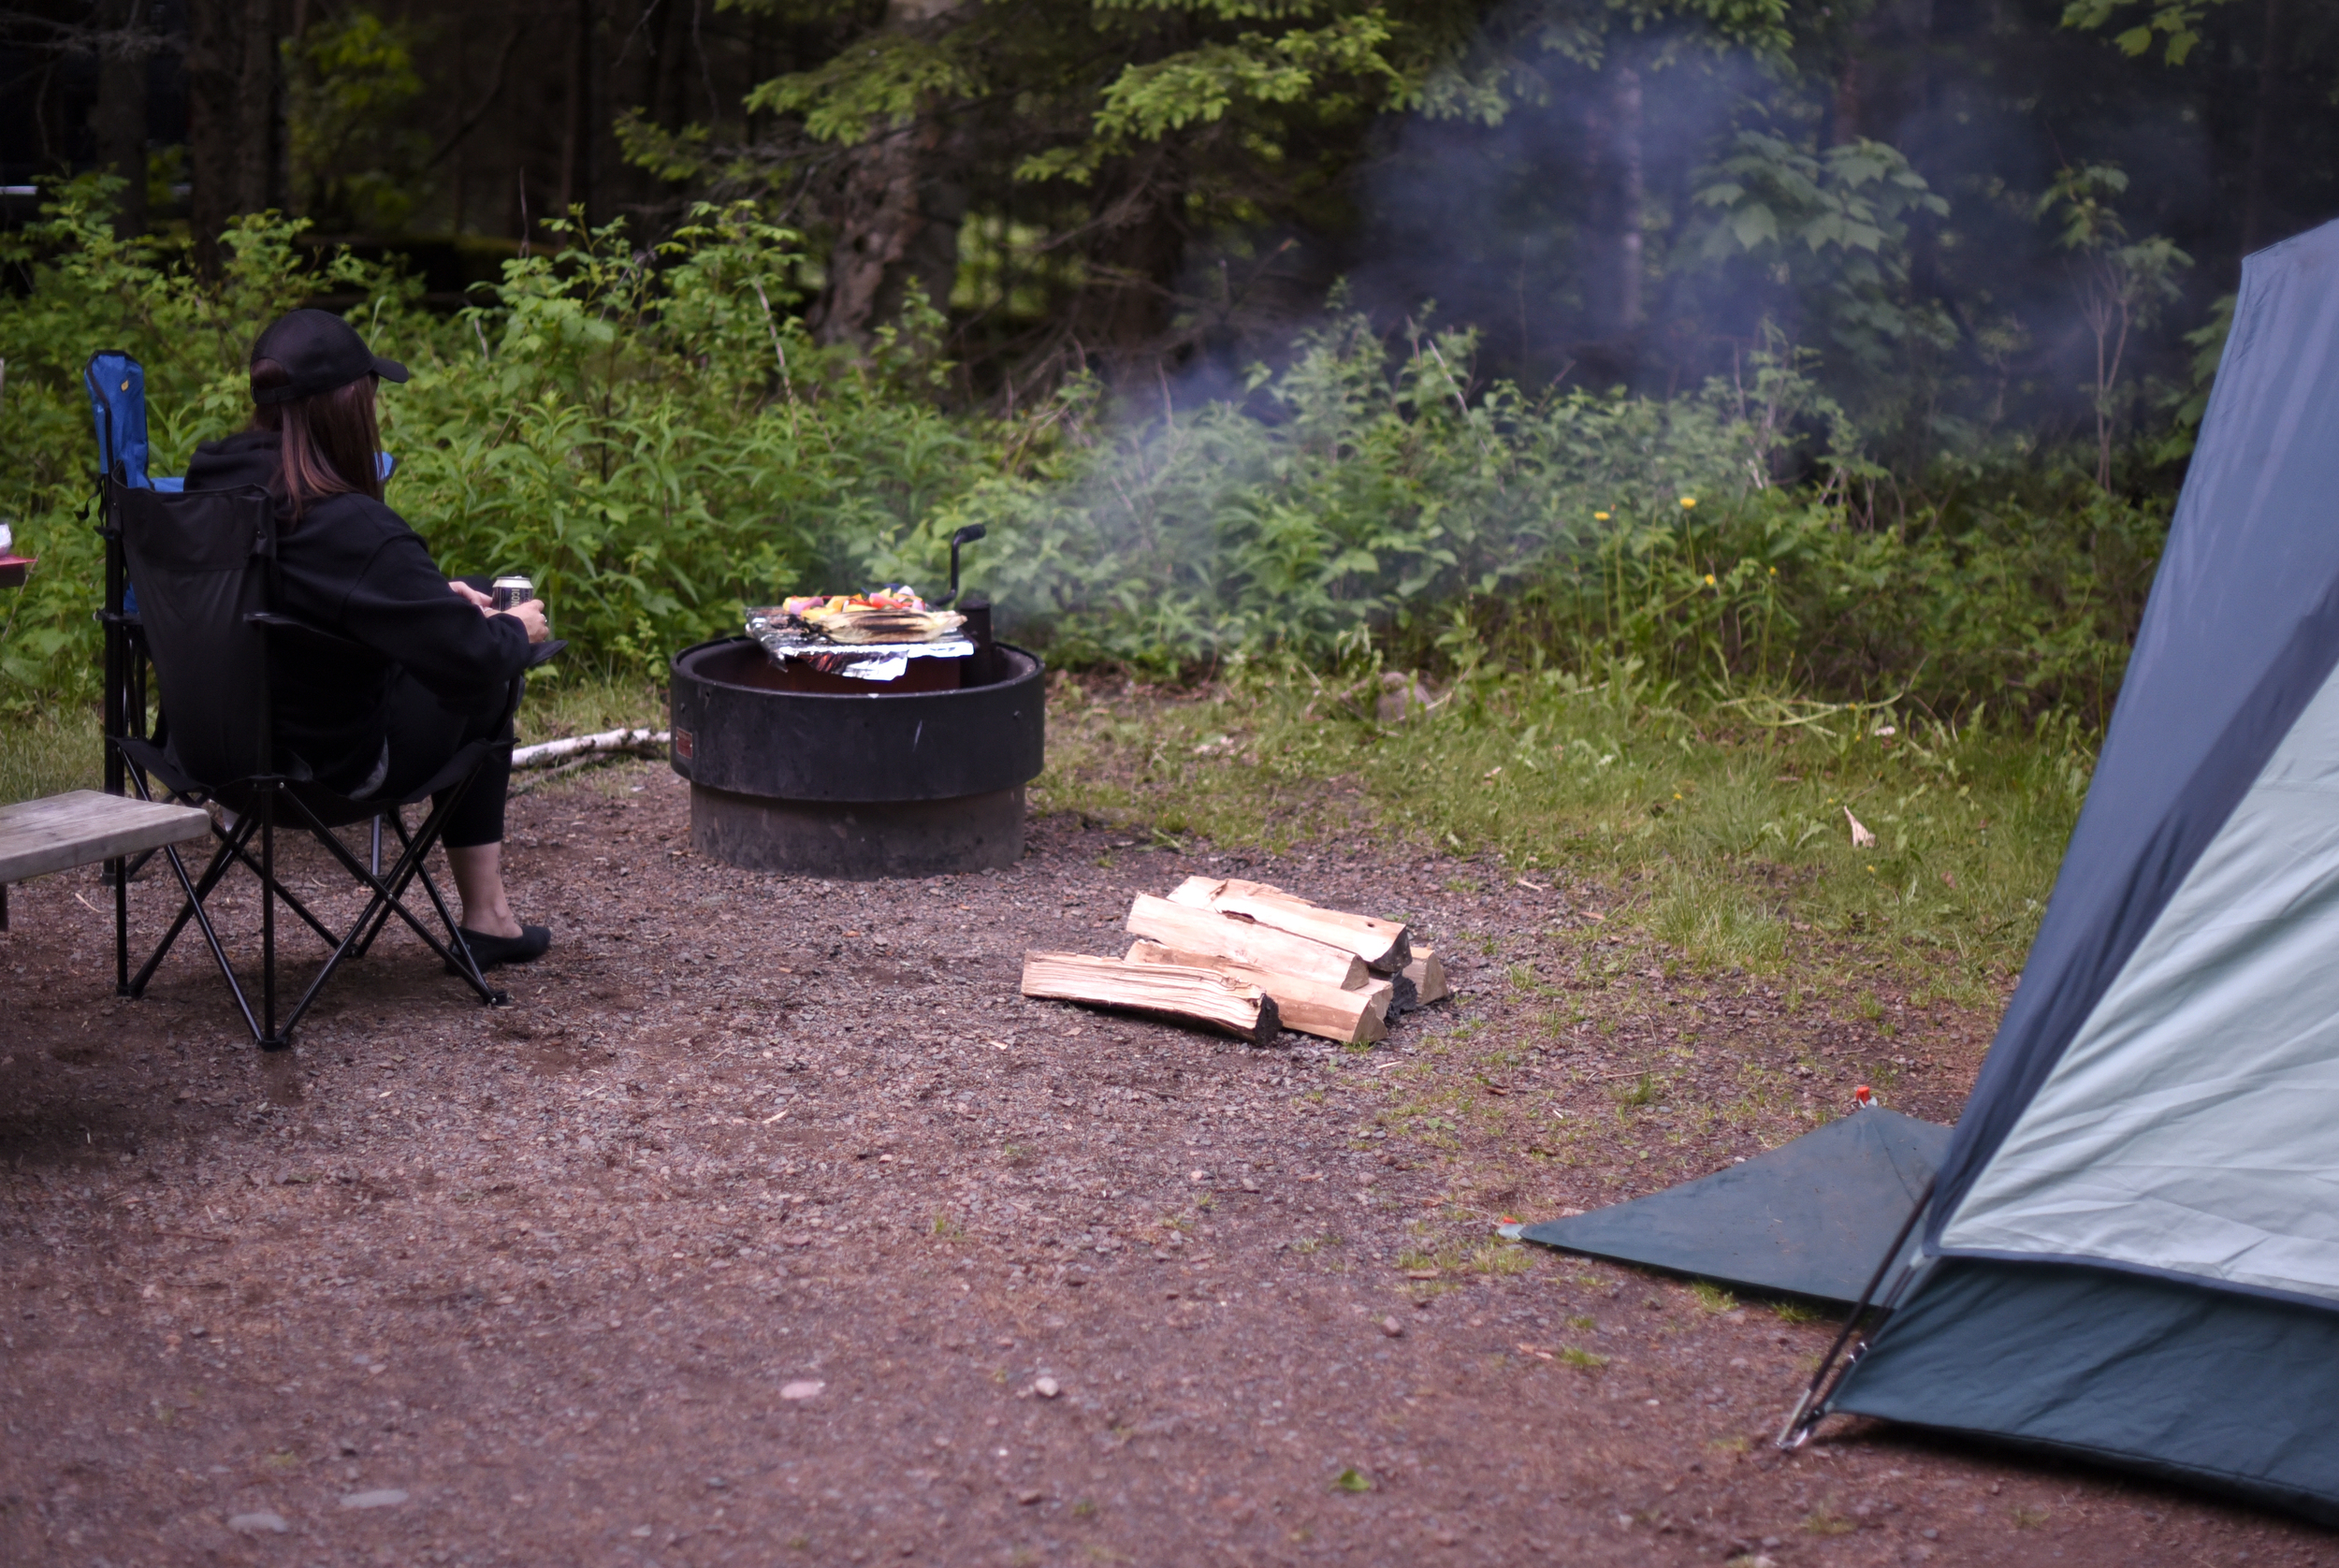 Our first night in Judge C.R. Magney State Park.